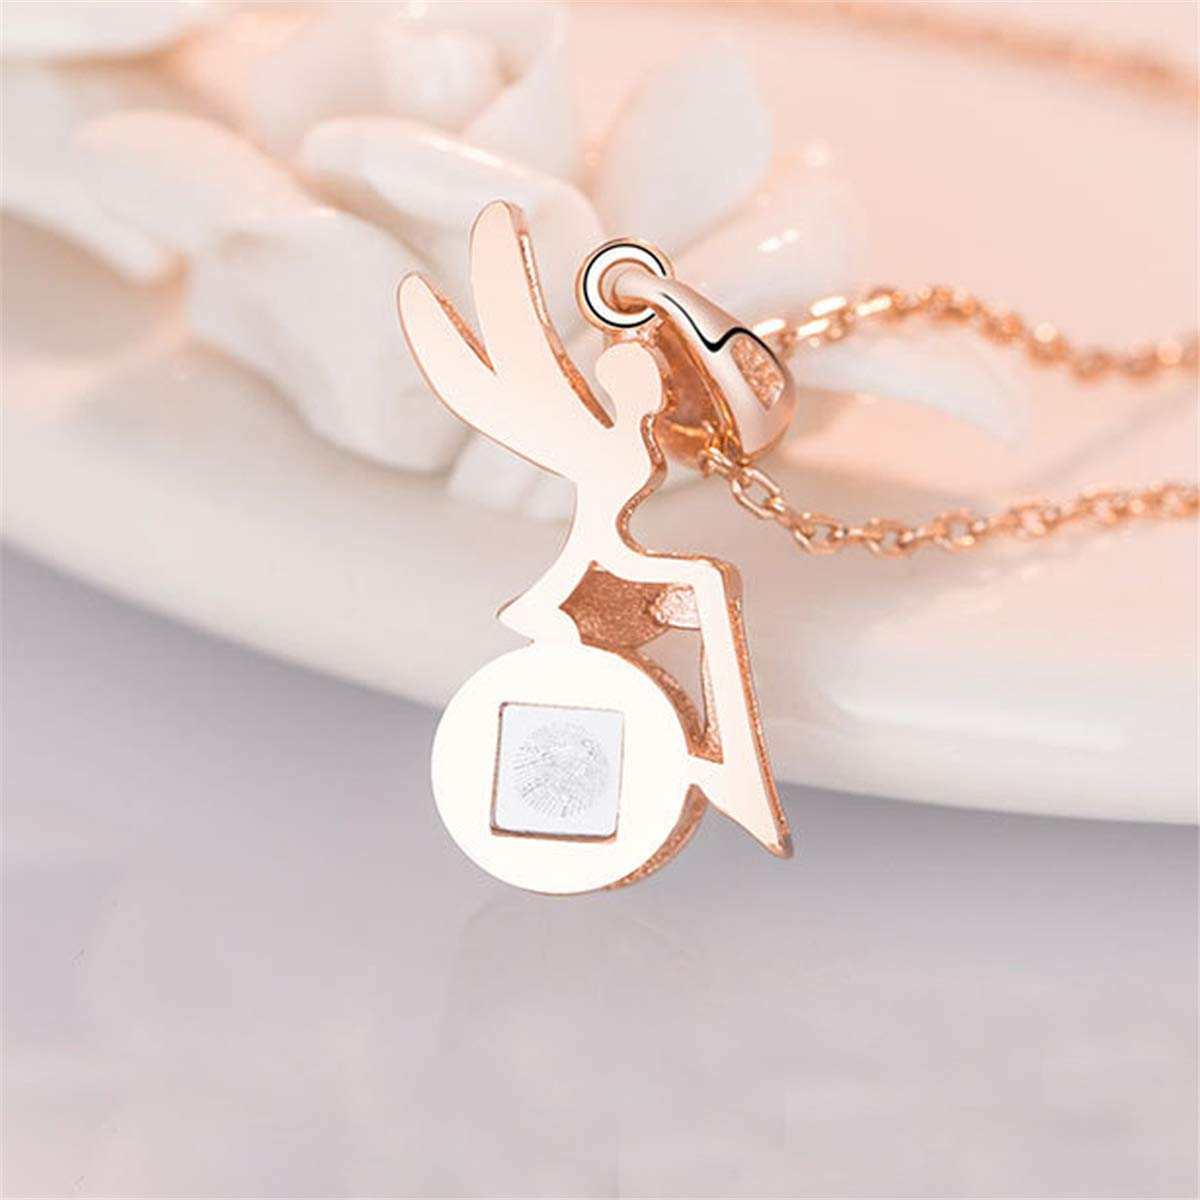 BONLAVIE I Love You Personalized Customized Necklace 925 Sterling Silver//Rose Gold Plated 100 Languages Projection Angel Pendant The Memory of Love